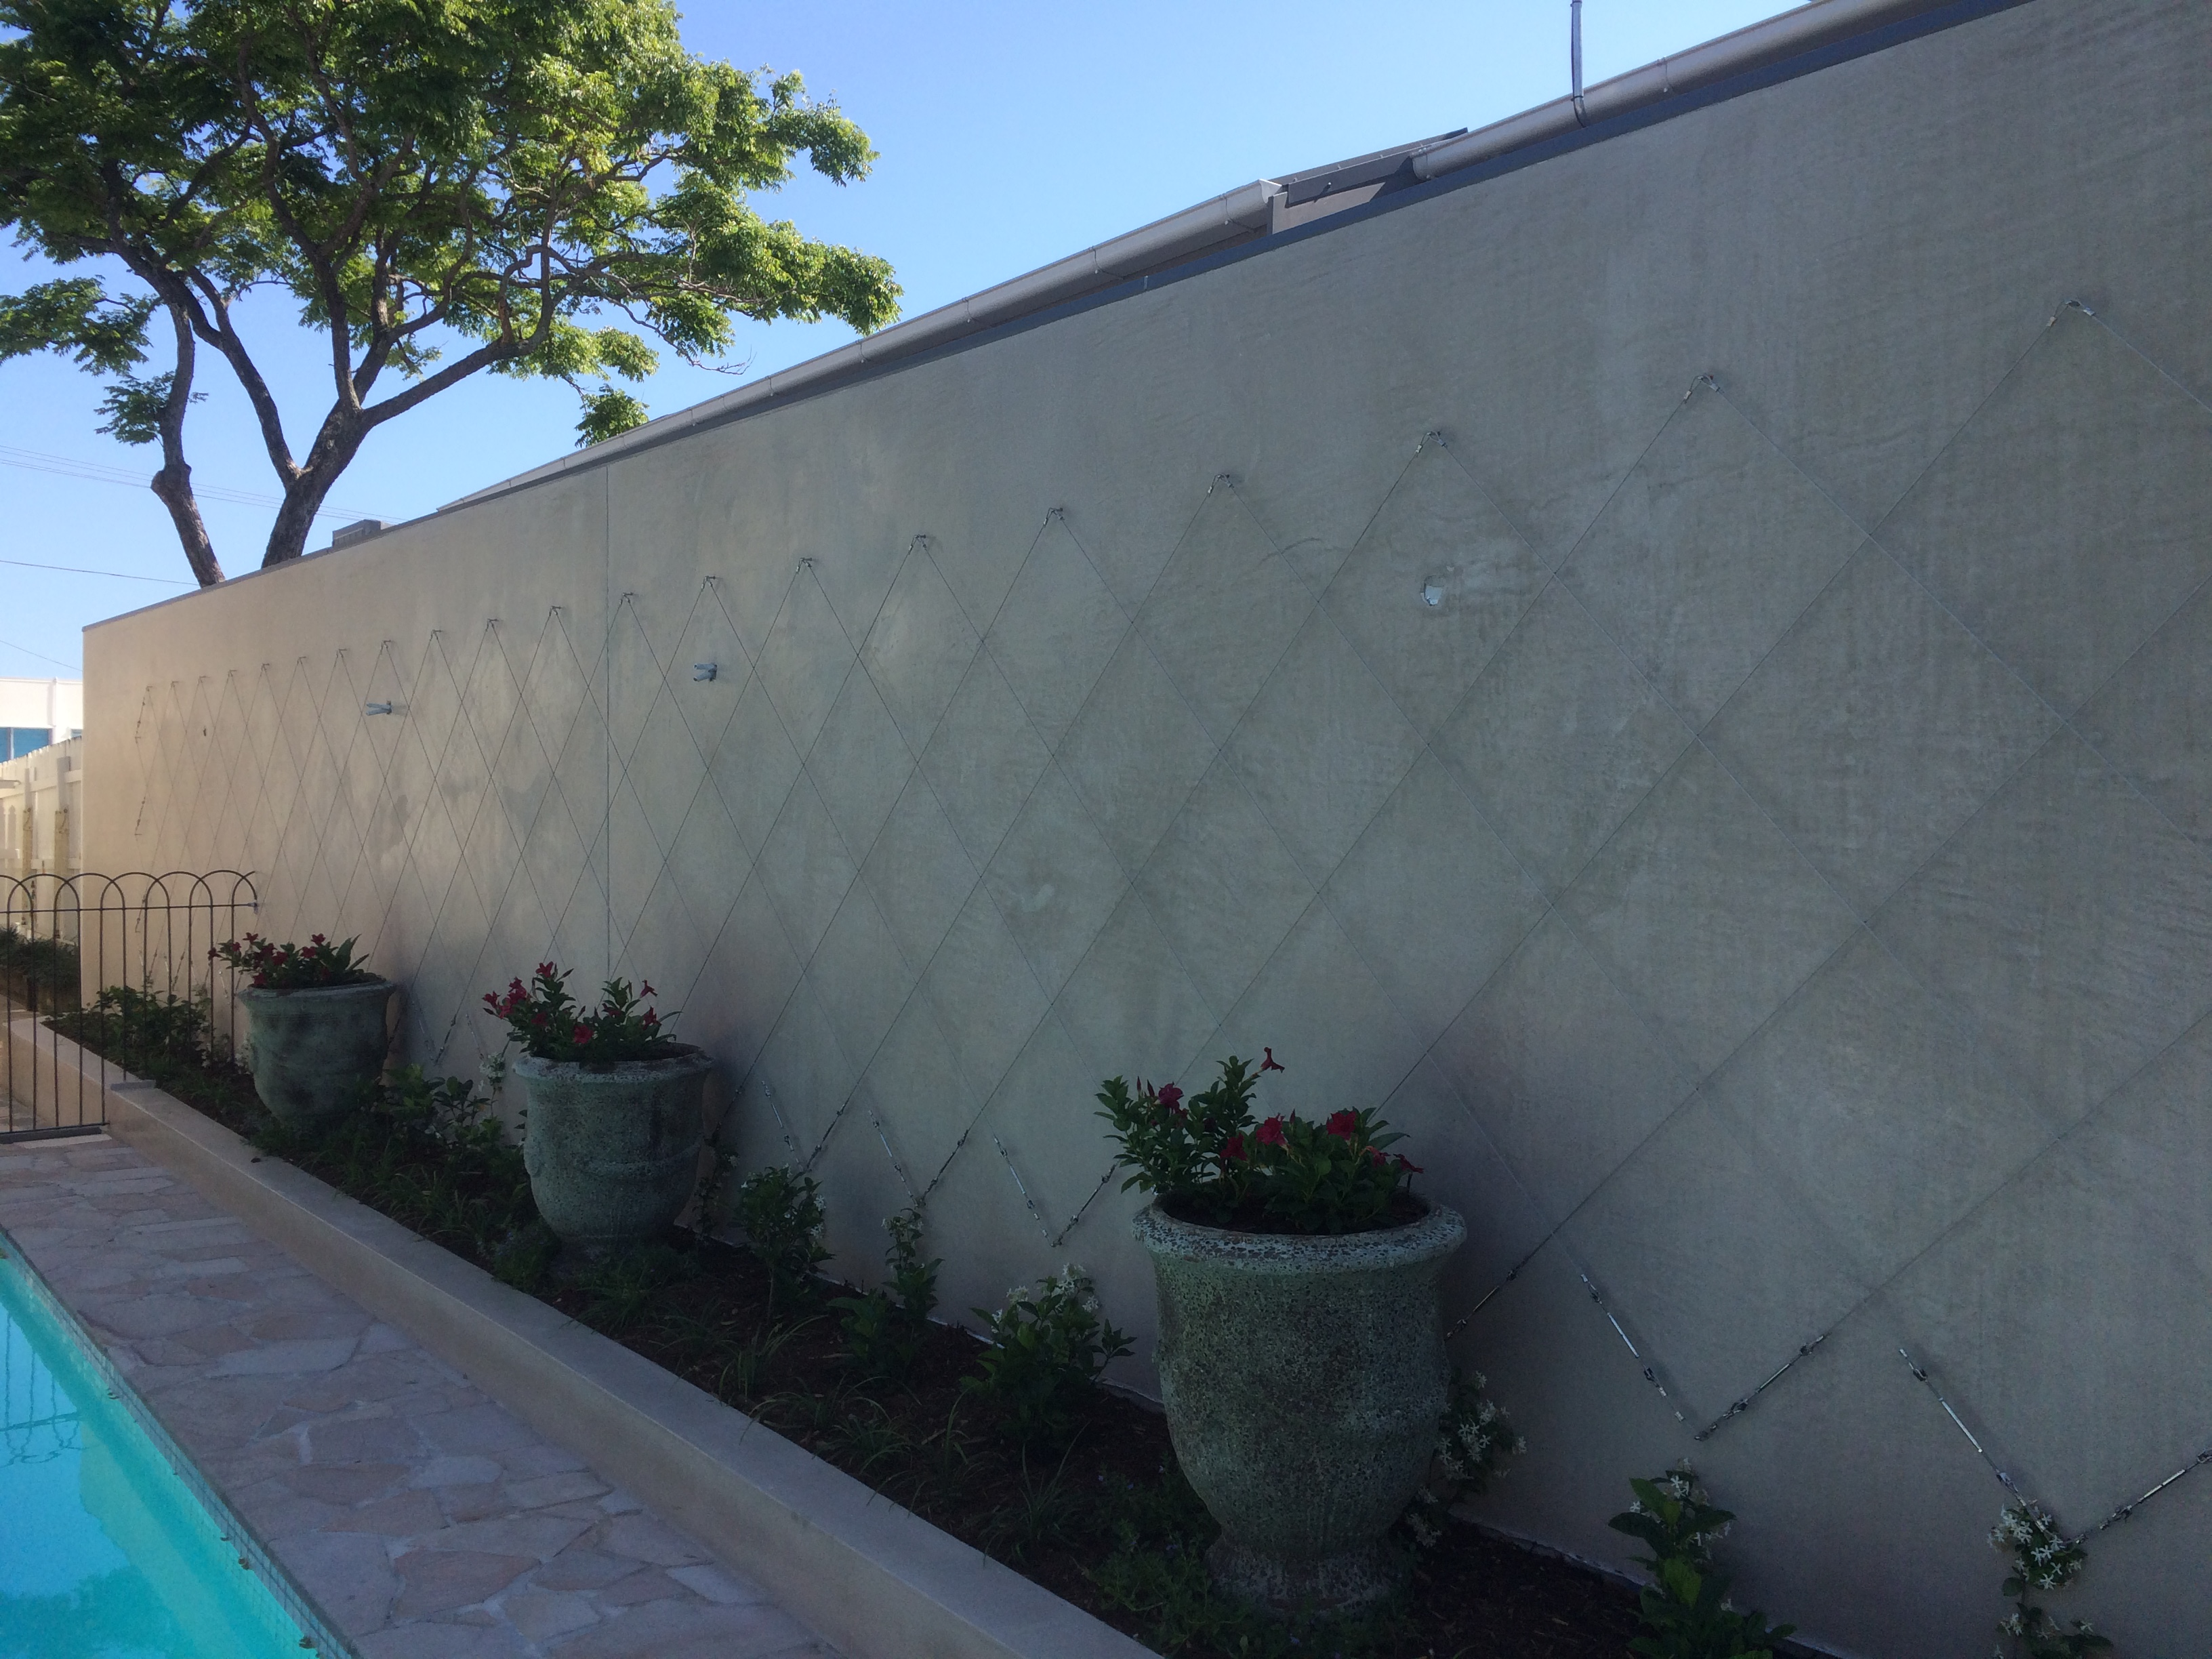 Stucco Contractor Vancouver Revolutionary Lime Based Scratch Brown And Topcoats The New